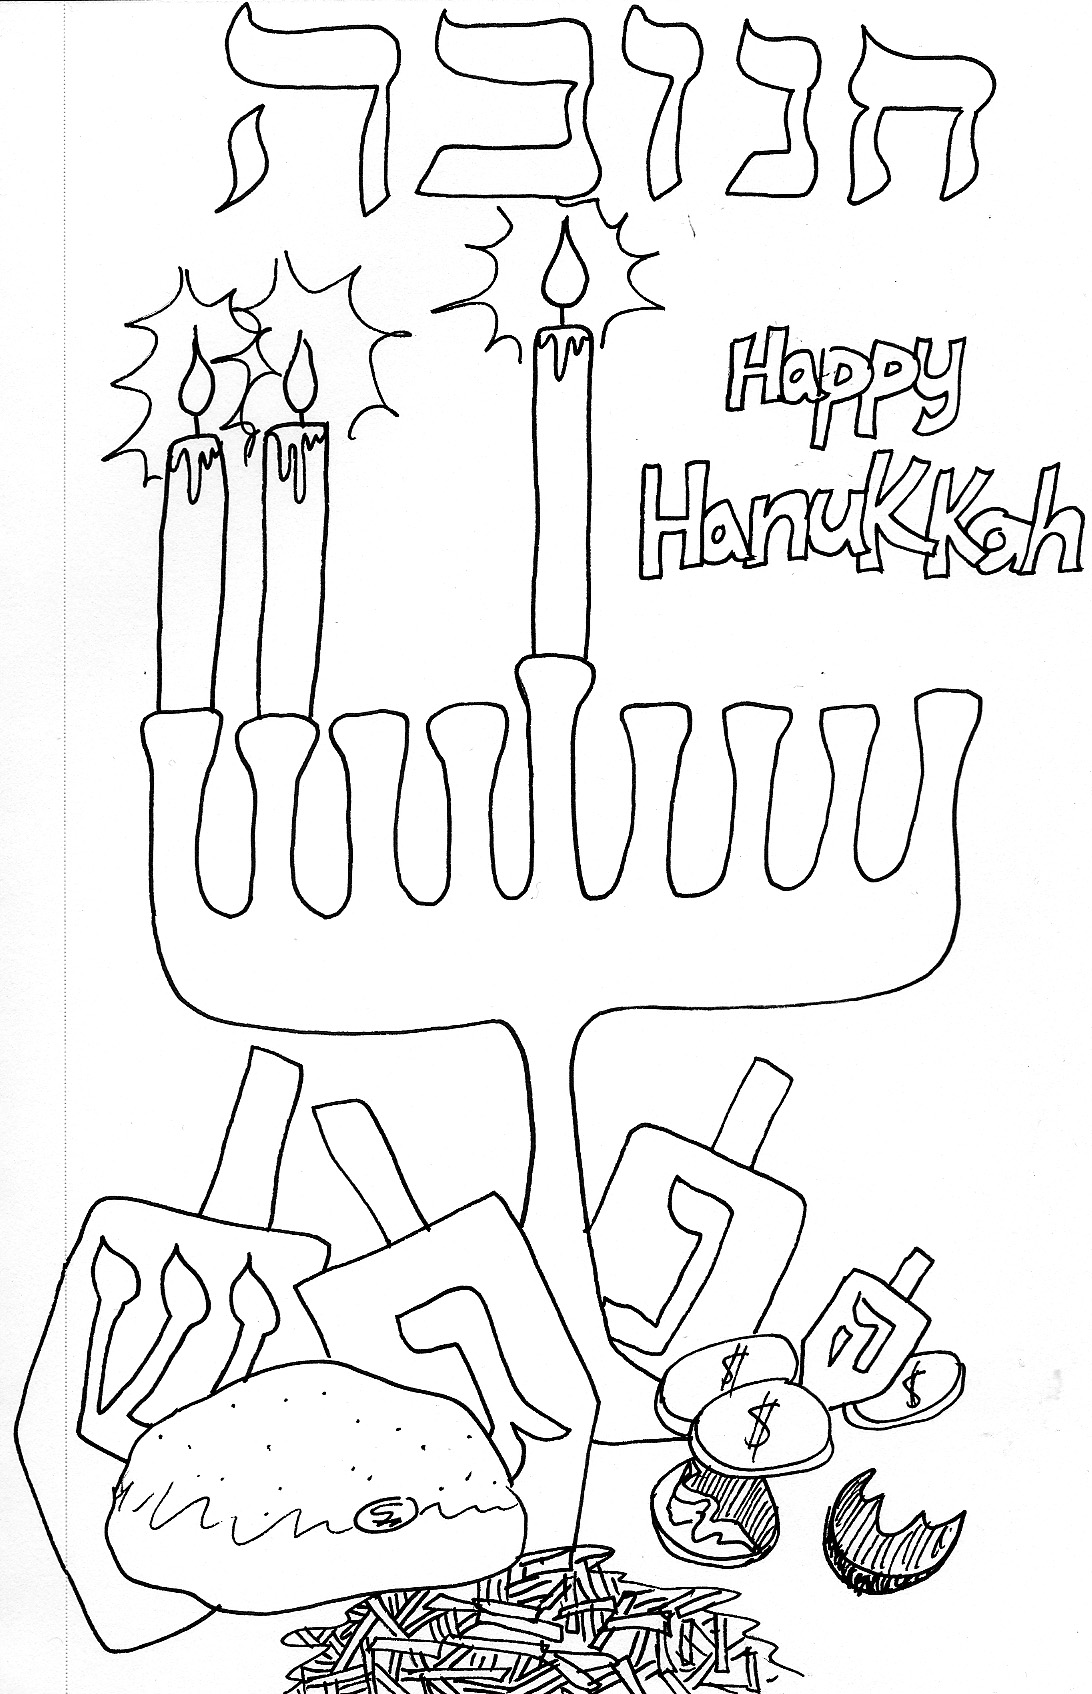 best coloring pages for kids - free printable hanukkah coloring pages for kids best